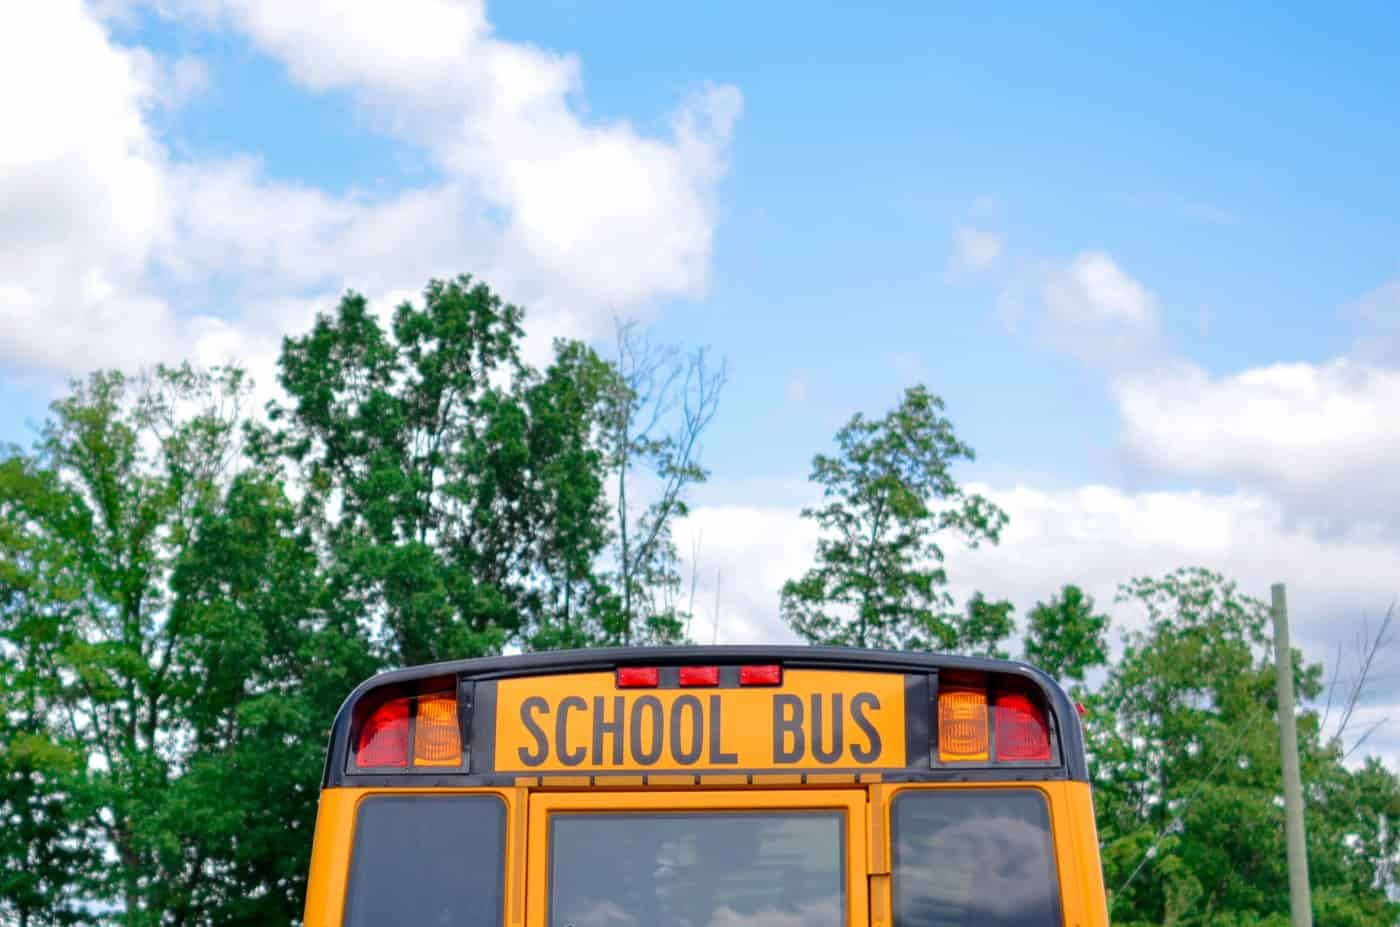 school bus accidents in greenville south carolina